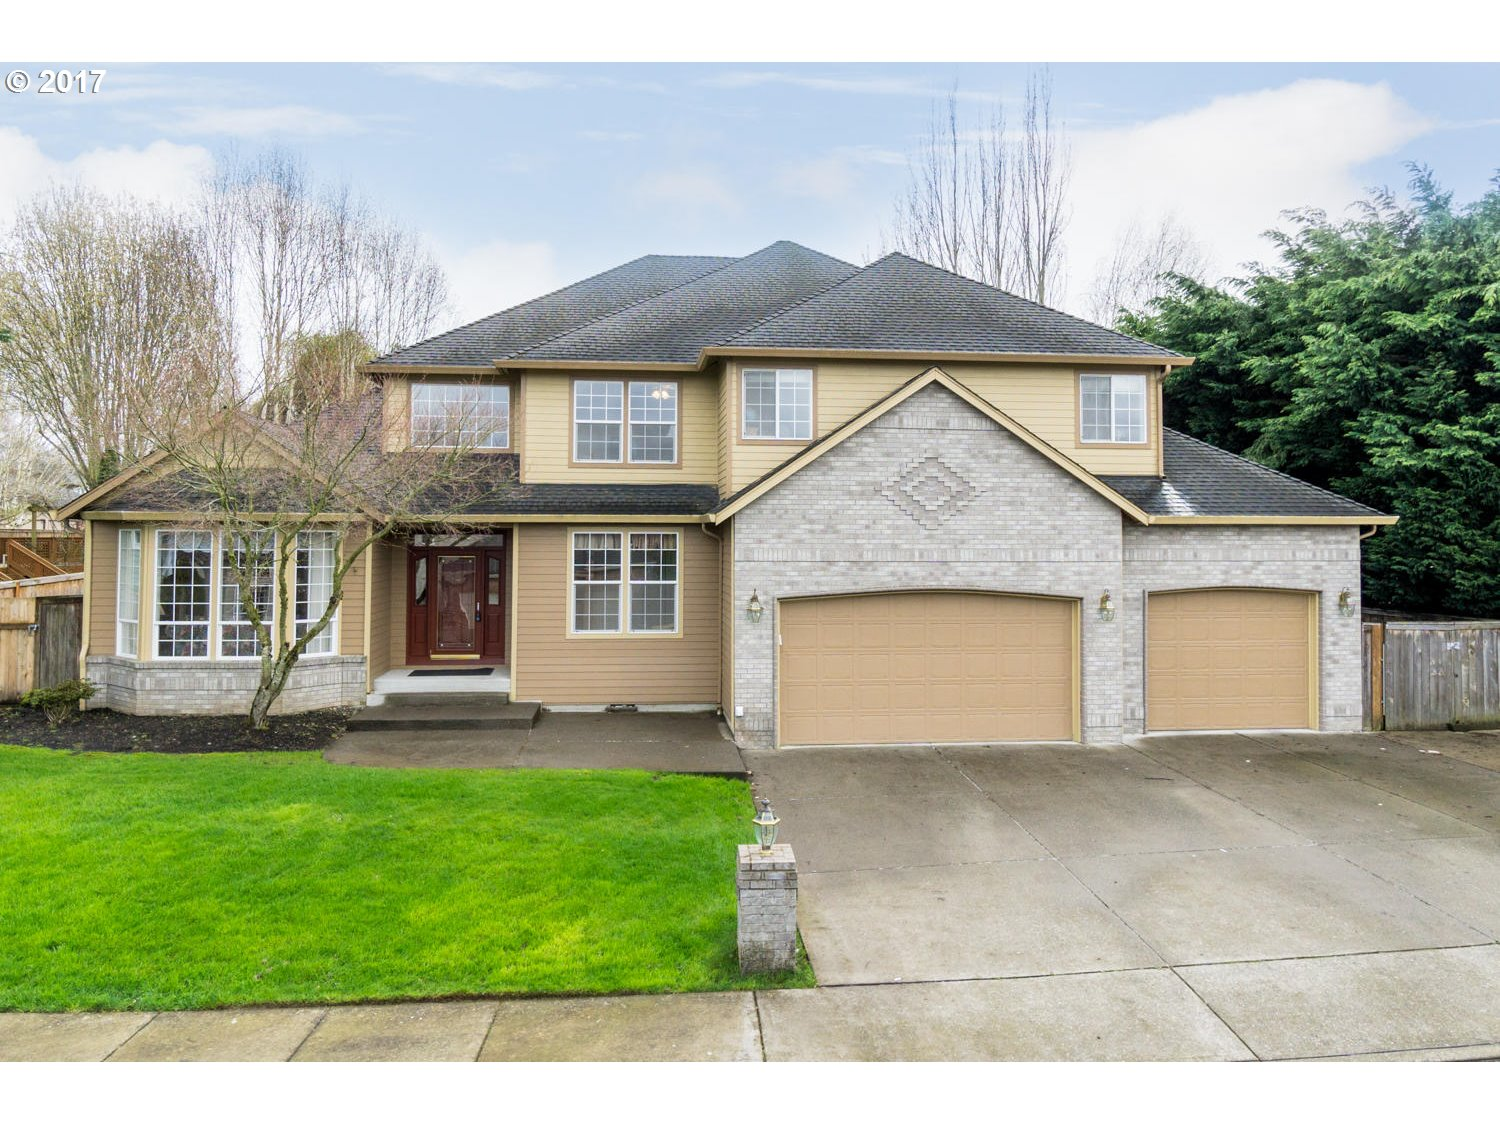 5109 NW 140TH ST, Vancouver, WA 98685